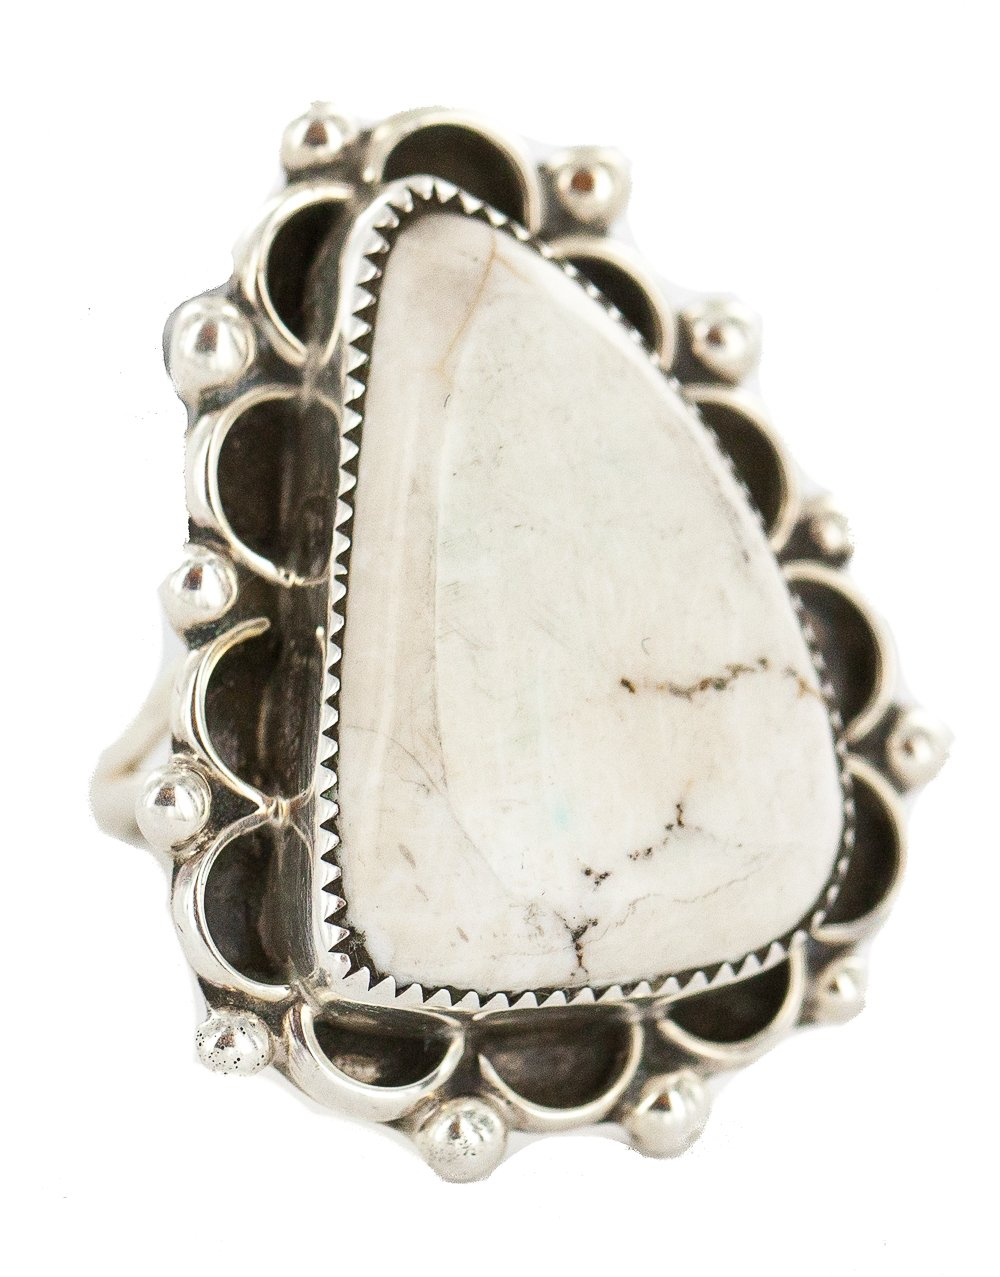 Large $490 Retail Tag Handmade Navajo Authentic Silver Made by Robert Little Natural White Buffalo Turquoise Native American Ring